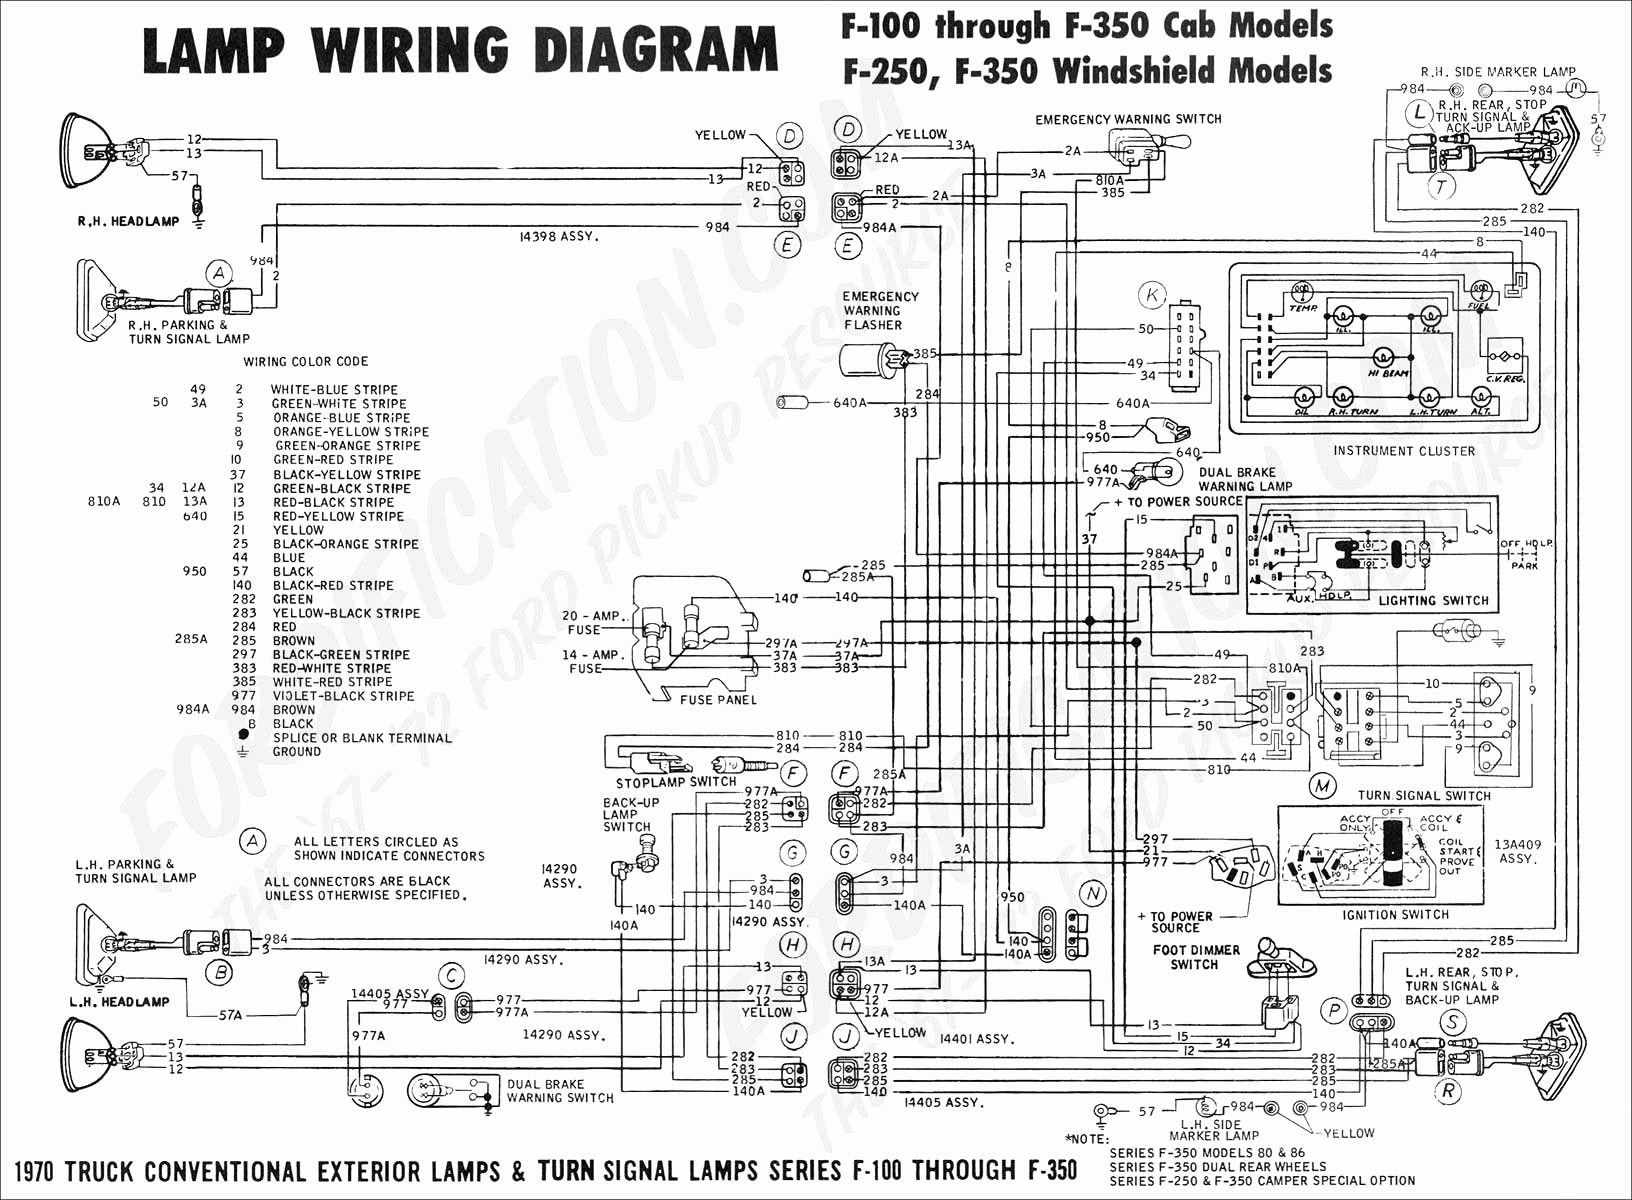 Mustang Engine Diagram 1965 ford Mustang Vin Decoder Beautiful Shelby Mustang – Best ford Of Mustang Engine Diagram ford Mustang Engines Classic Hot top Mustang Convertible Price ford